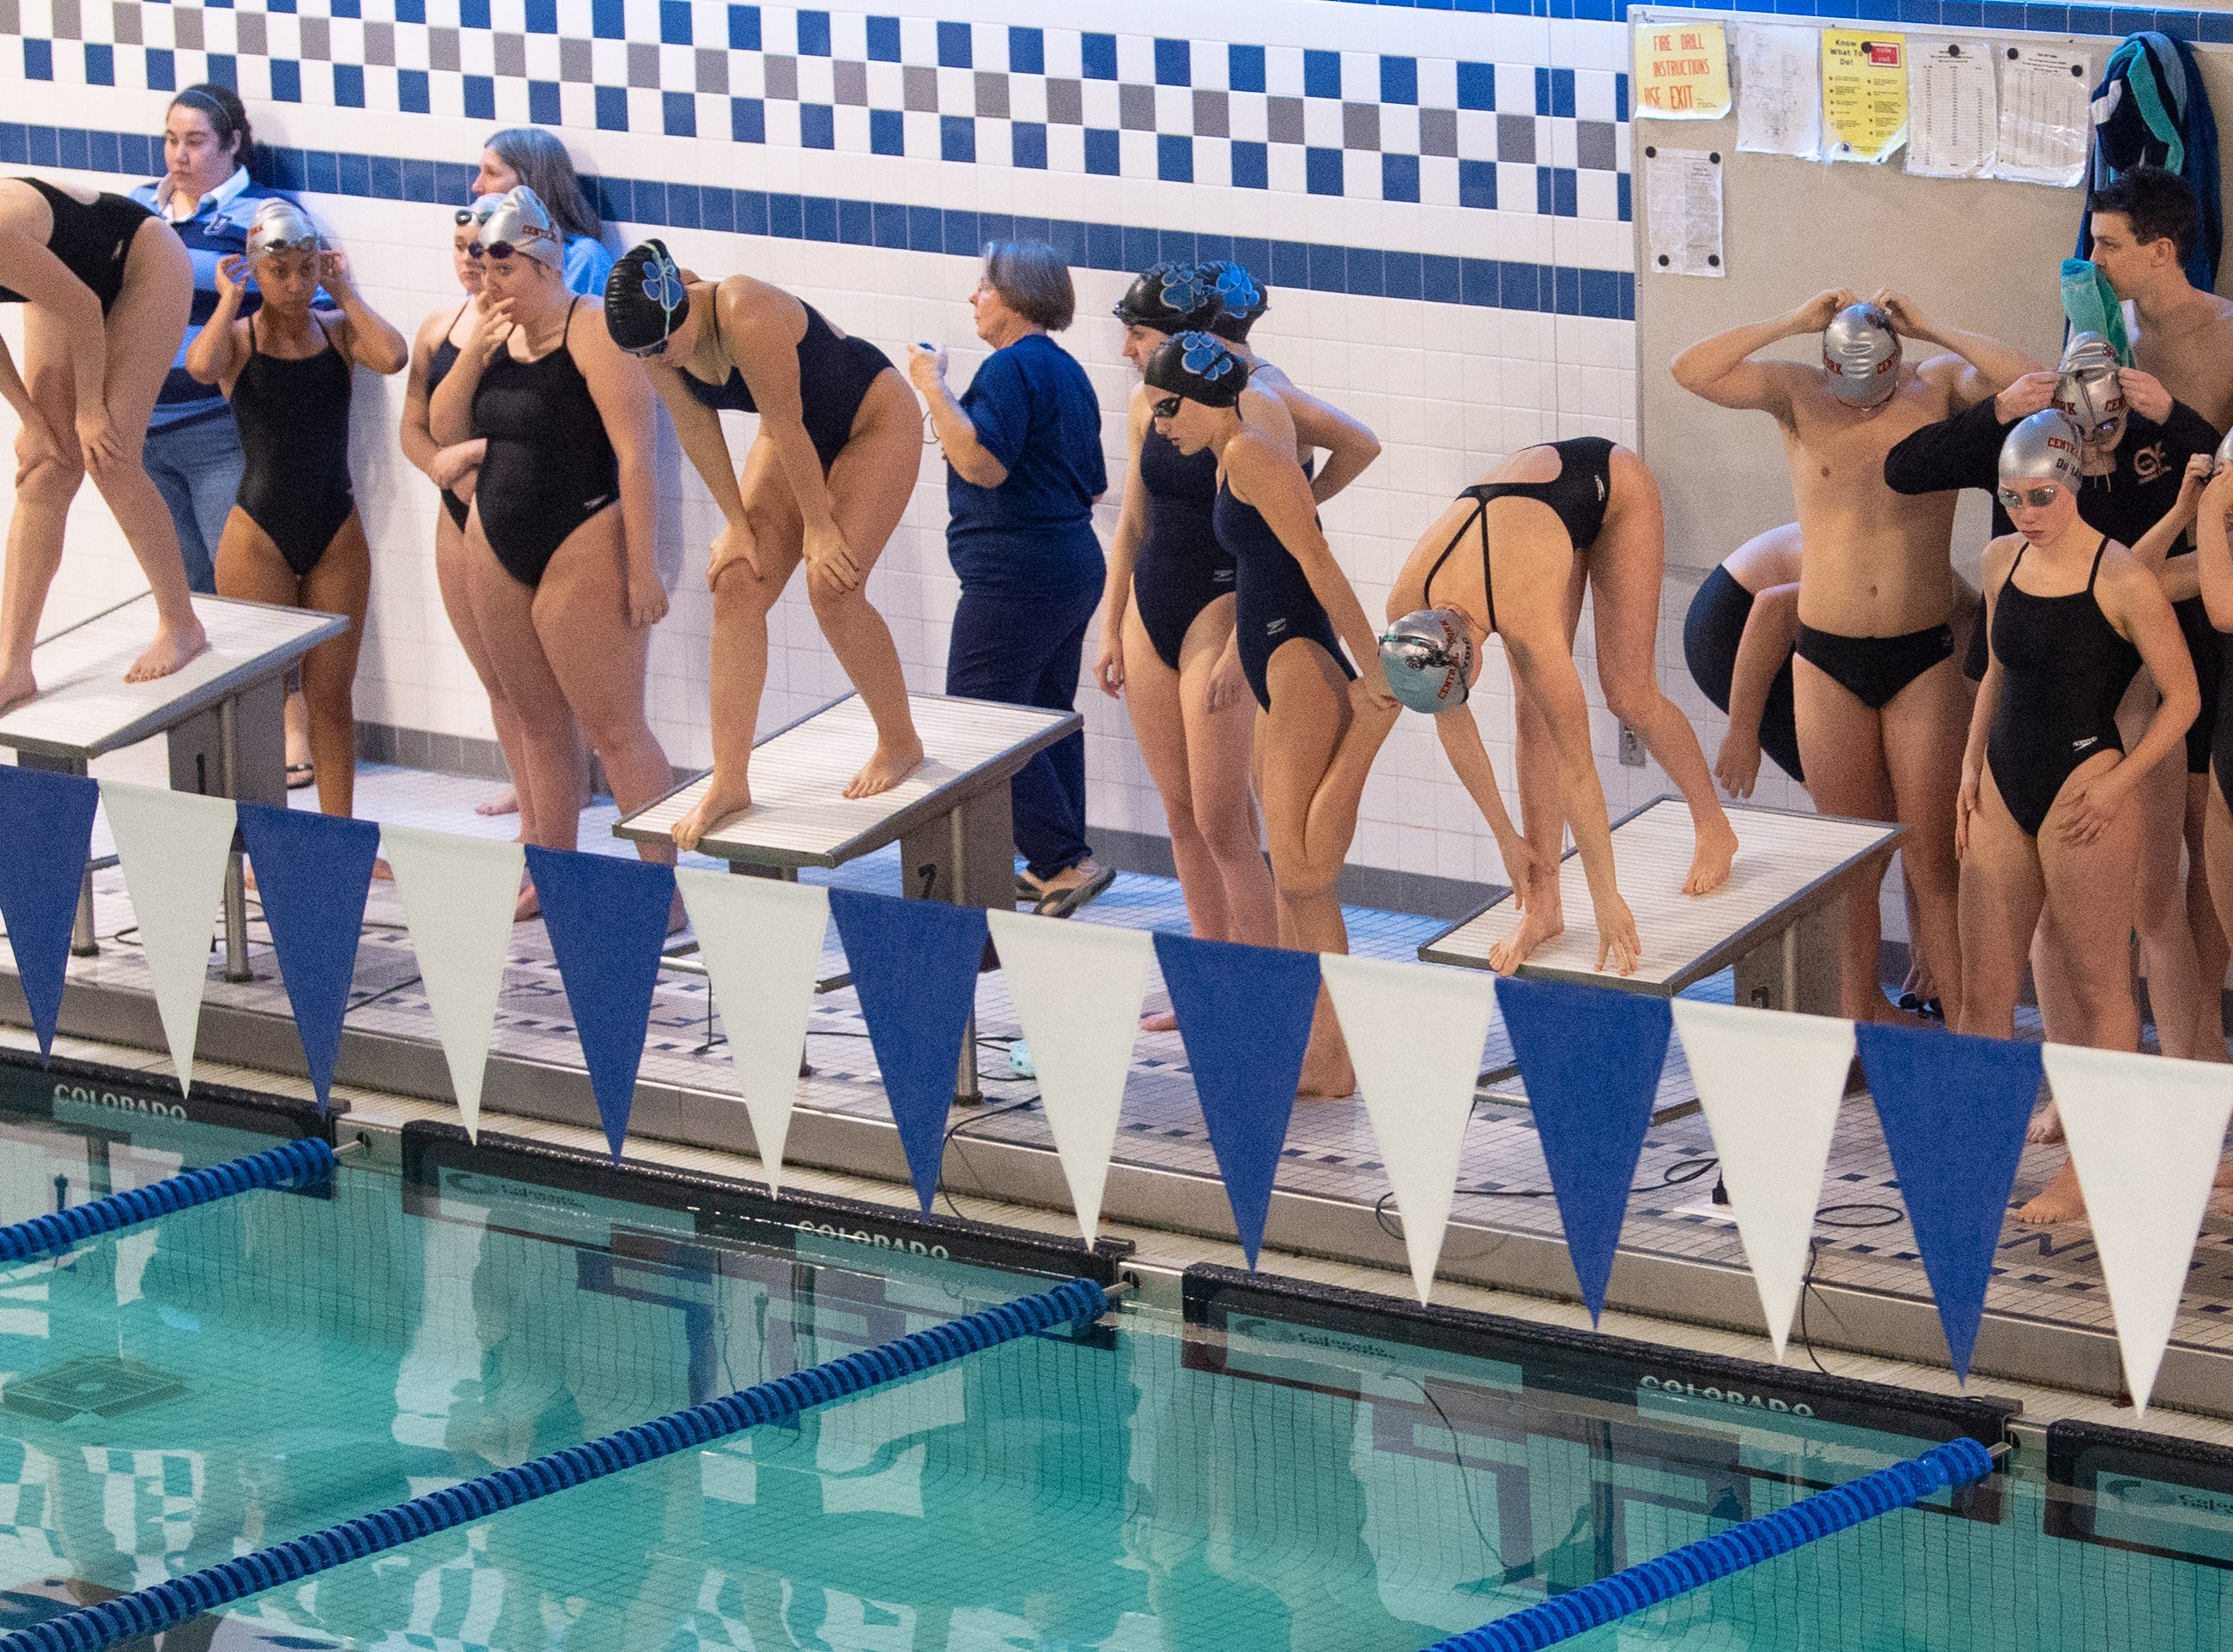 The girls prepare to compete in the 200 Yard Freestyle Relay during the boys' and girls' swim meet between Dallastown and Central York, January 10, 2019. The Panthers defeated the Wildcats 93 to 77 and the Lady Panthers defeated the Lady Wildcats 96 to 74.